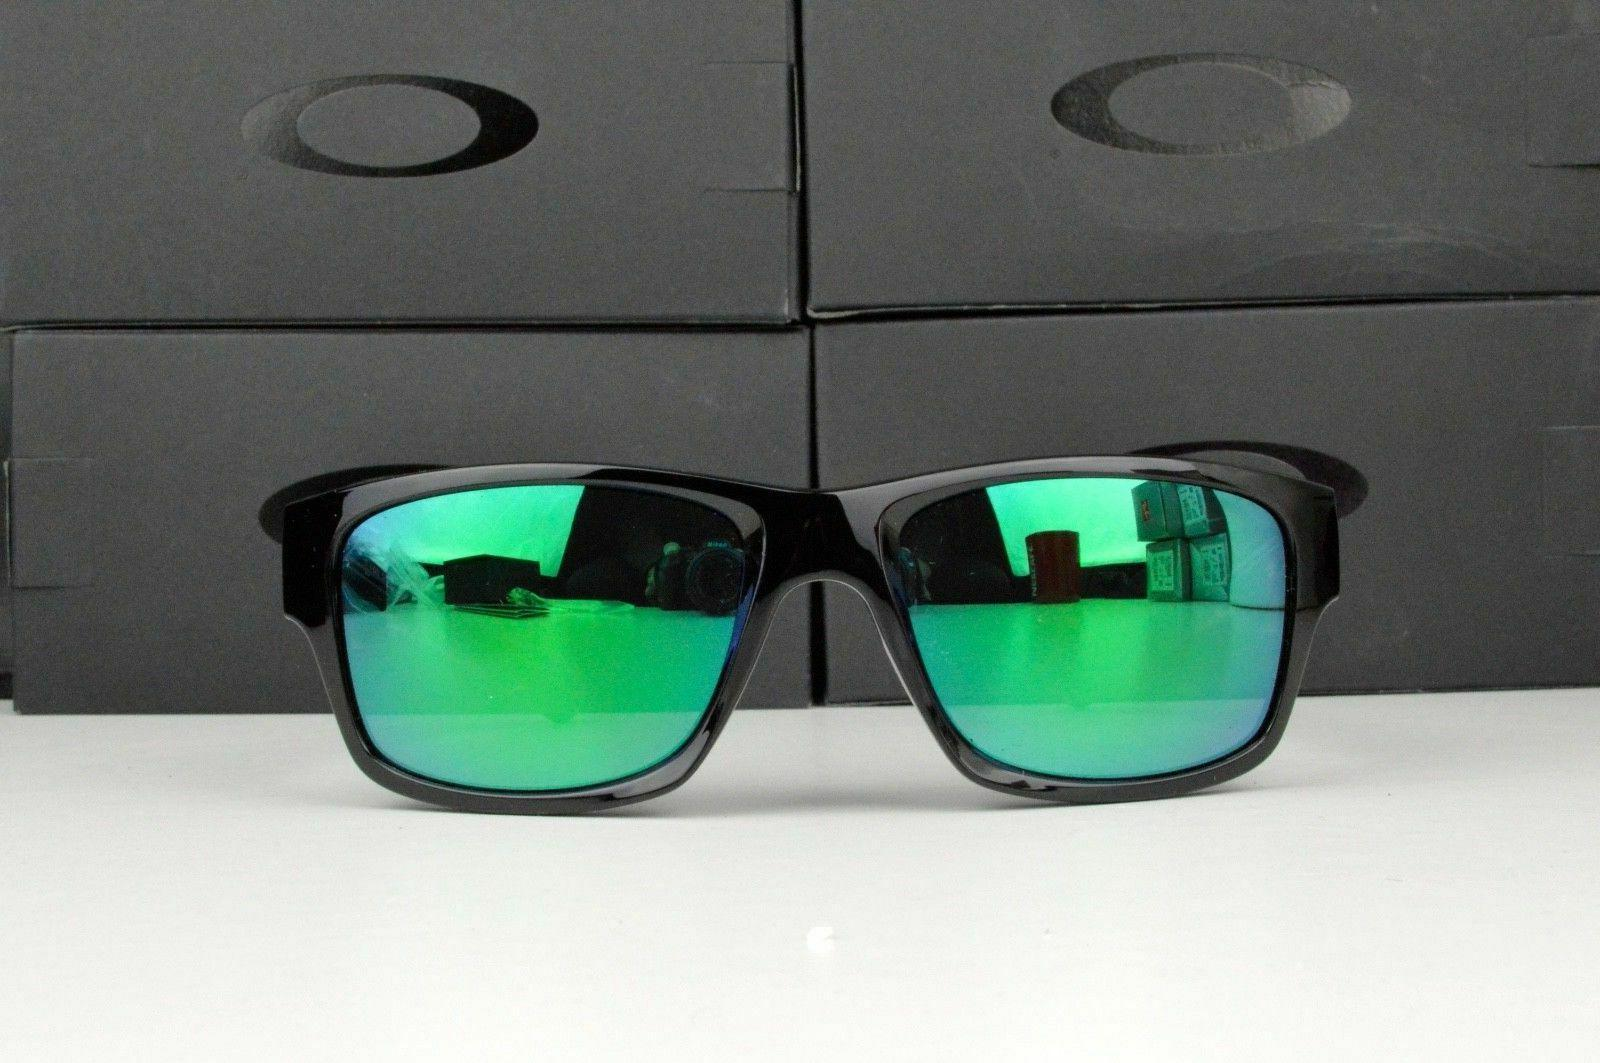 Oakley Sunglasses OO9135-05 Black Jade Iridium